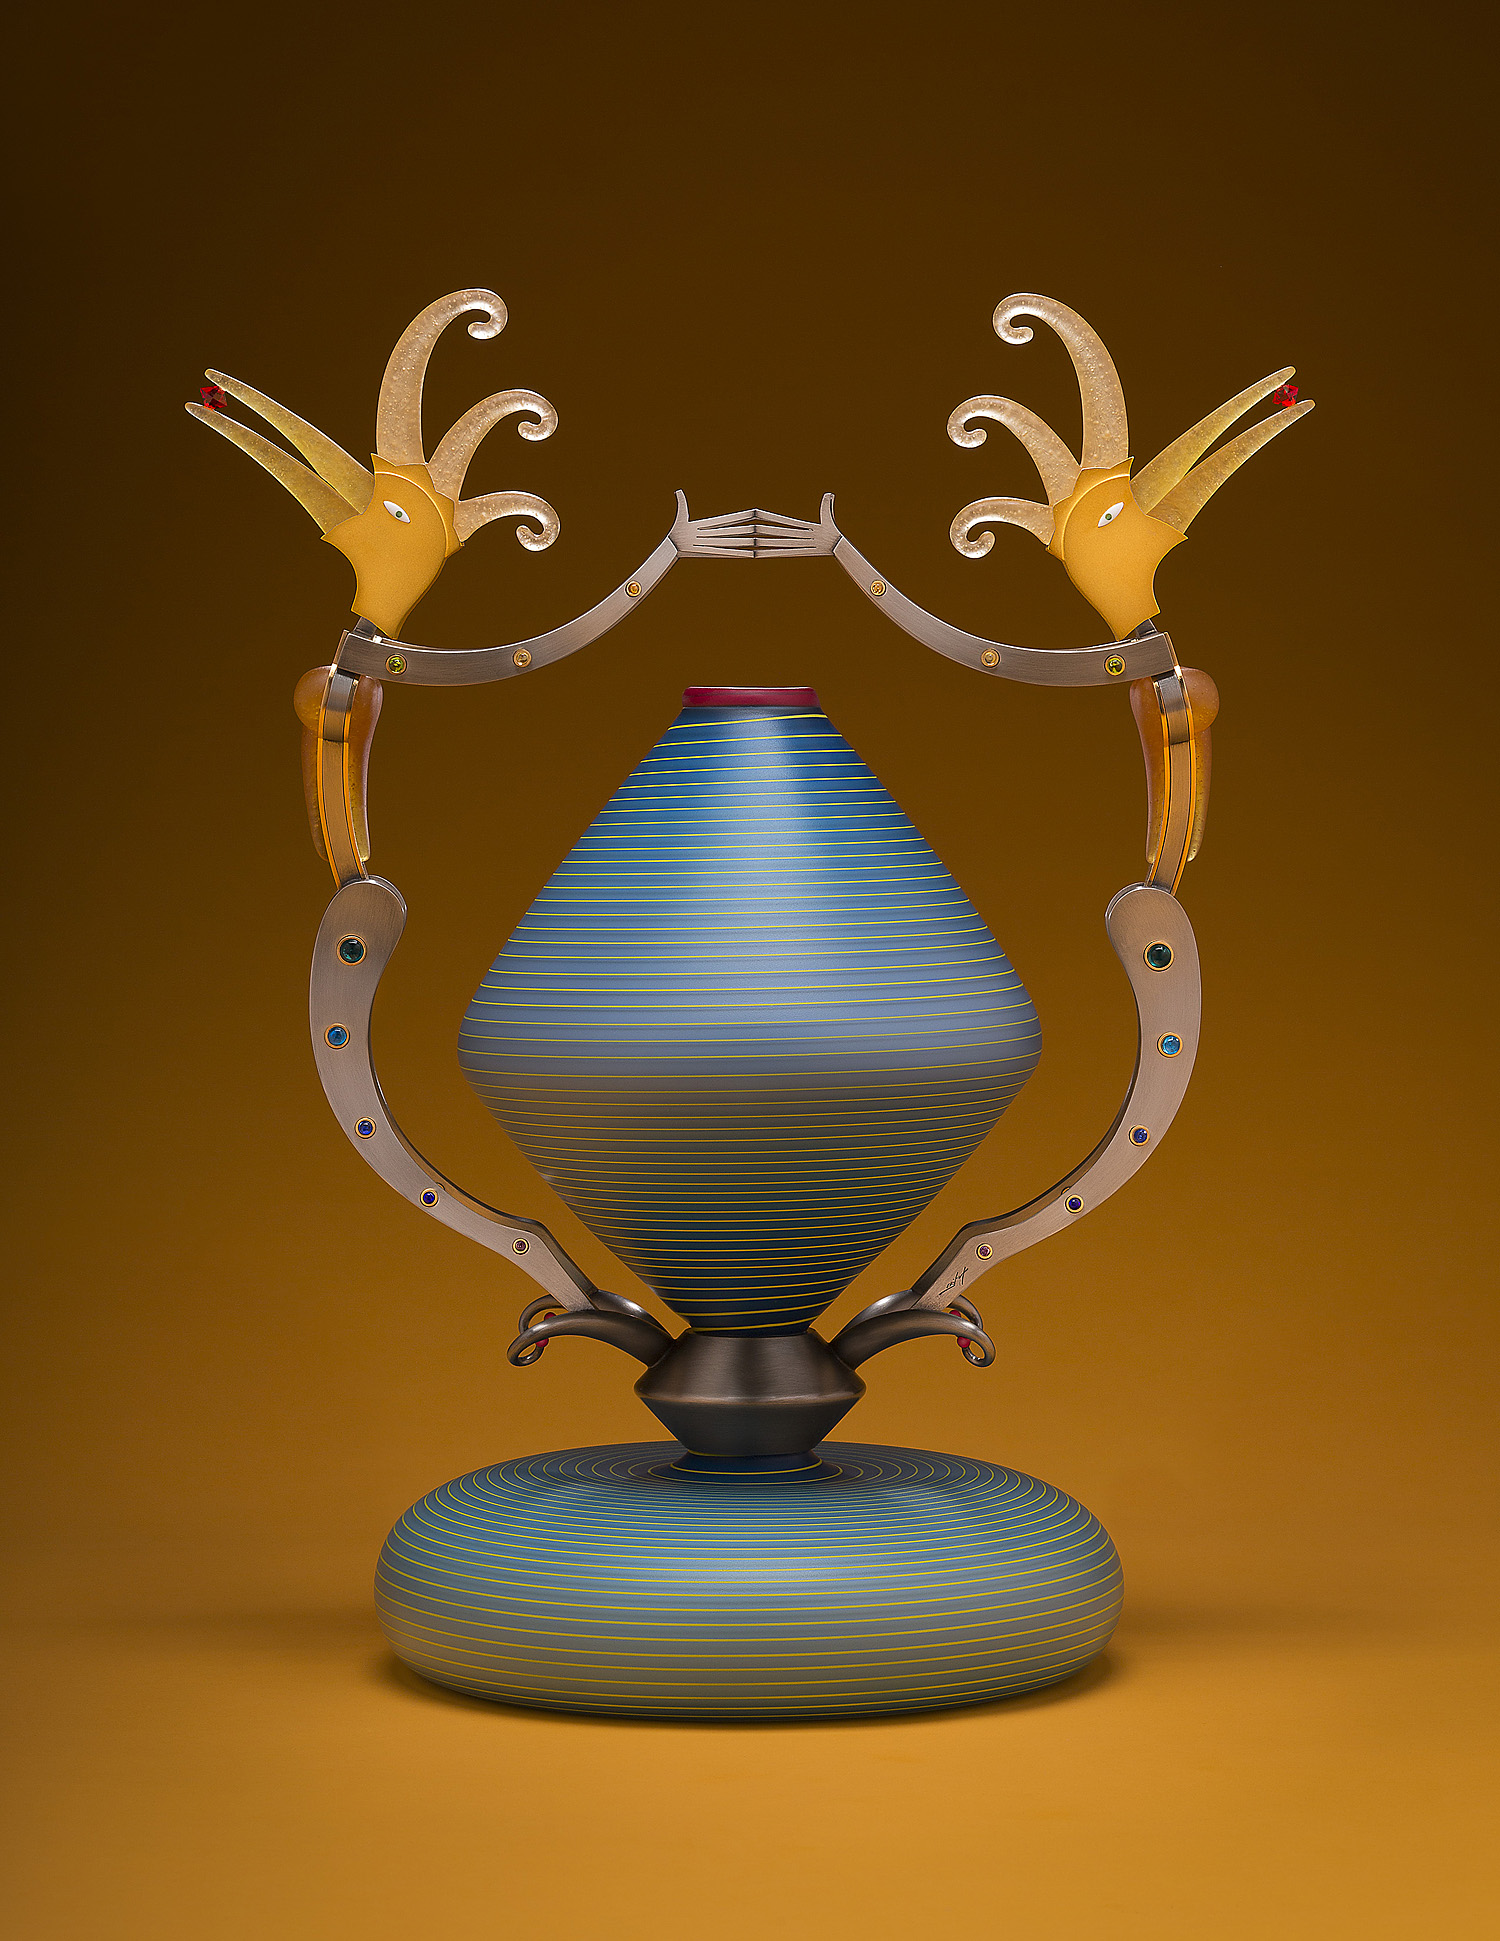 Spring   2012. Blown glass, nickel and gold-plated bronze, pate de verre and lampworked glass. 18 x 15 x 9½""